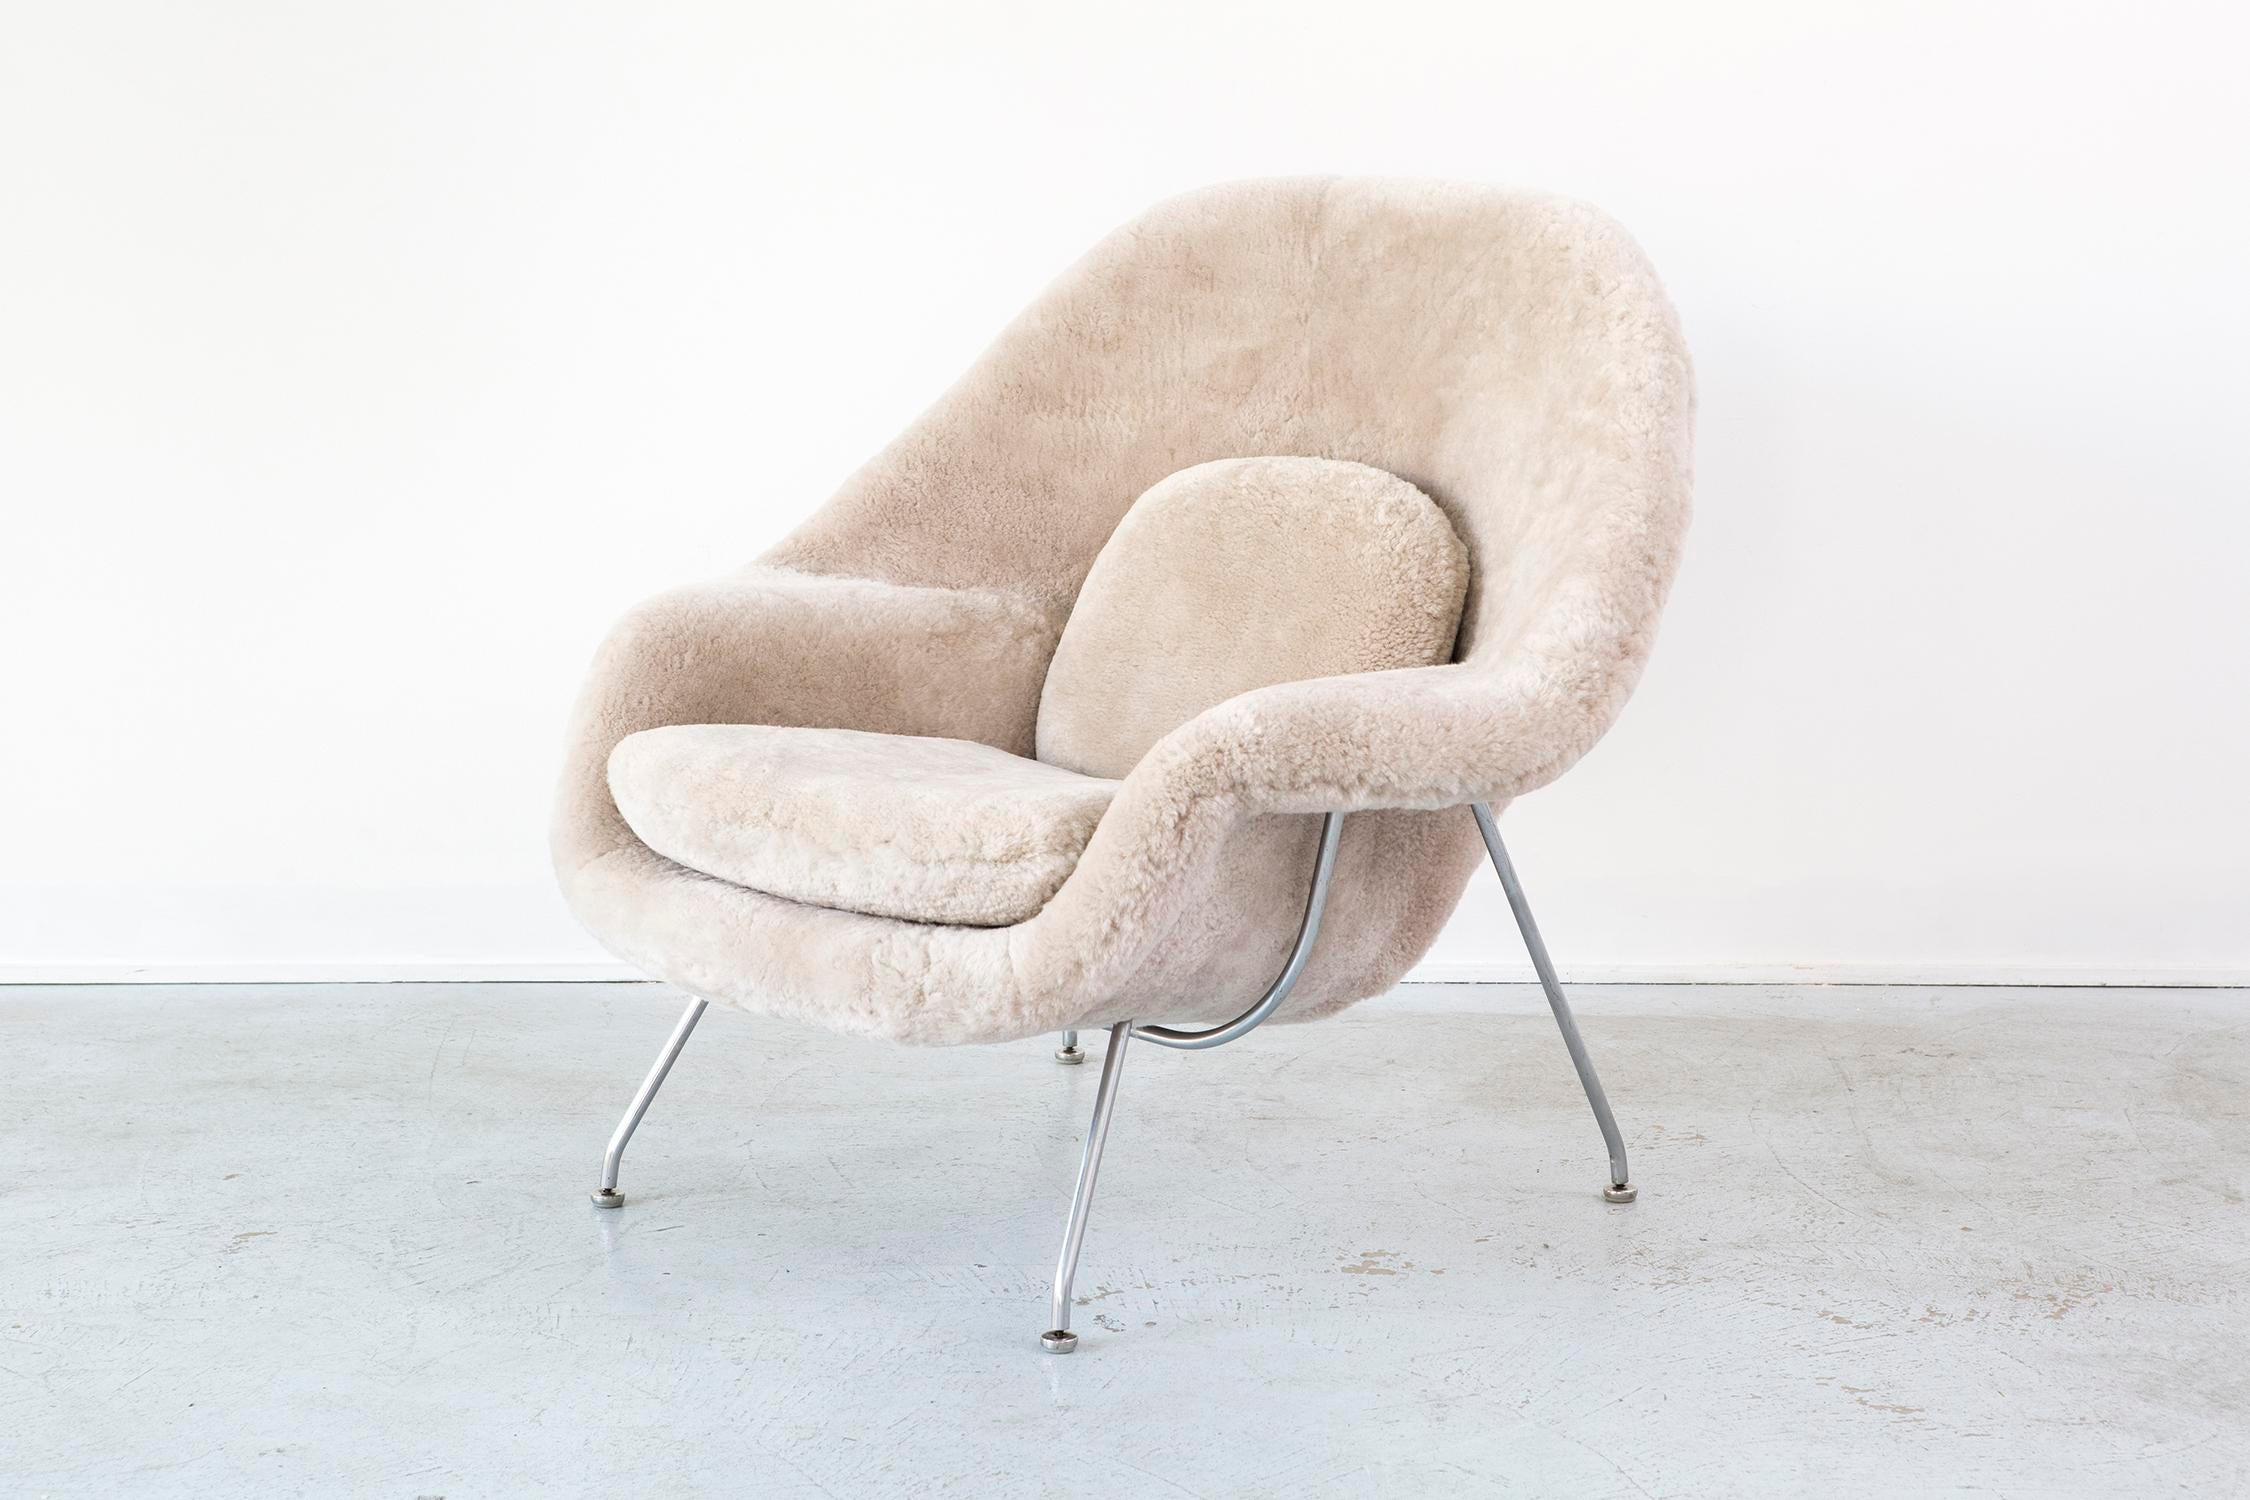 eero saarinen for knoll womb chair in shearling image 3 of 9